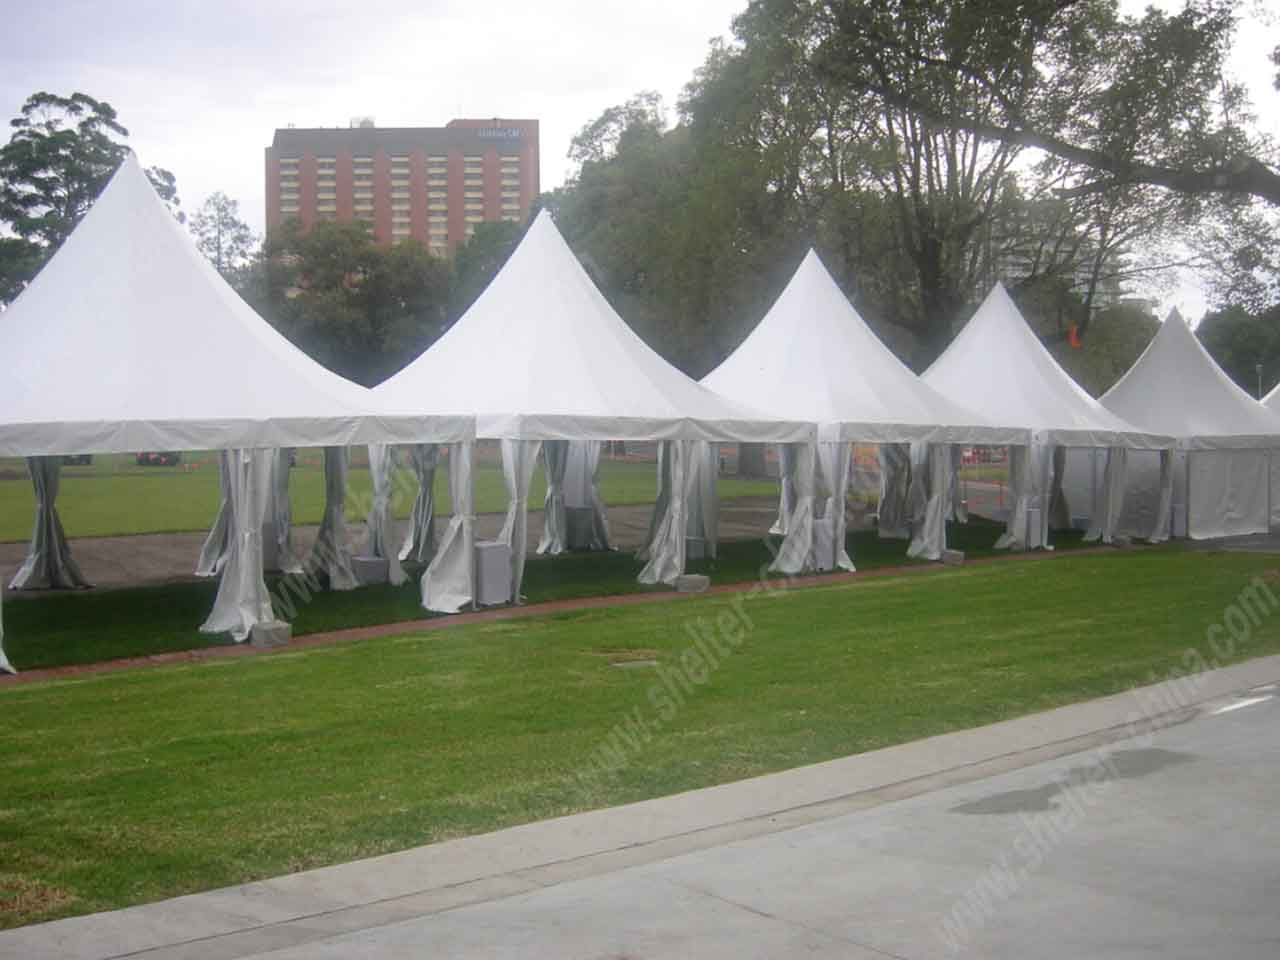 Original size is 1280 × 960 pixels & Cheap Outdoor Lightweight Tent Wholesale | Shelter Structures